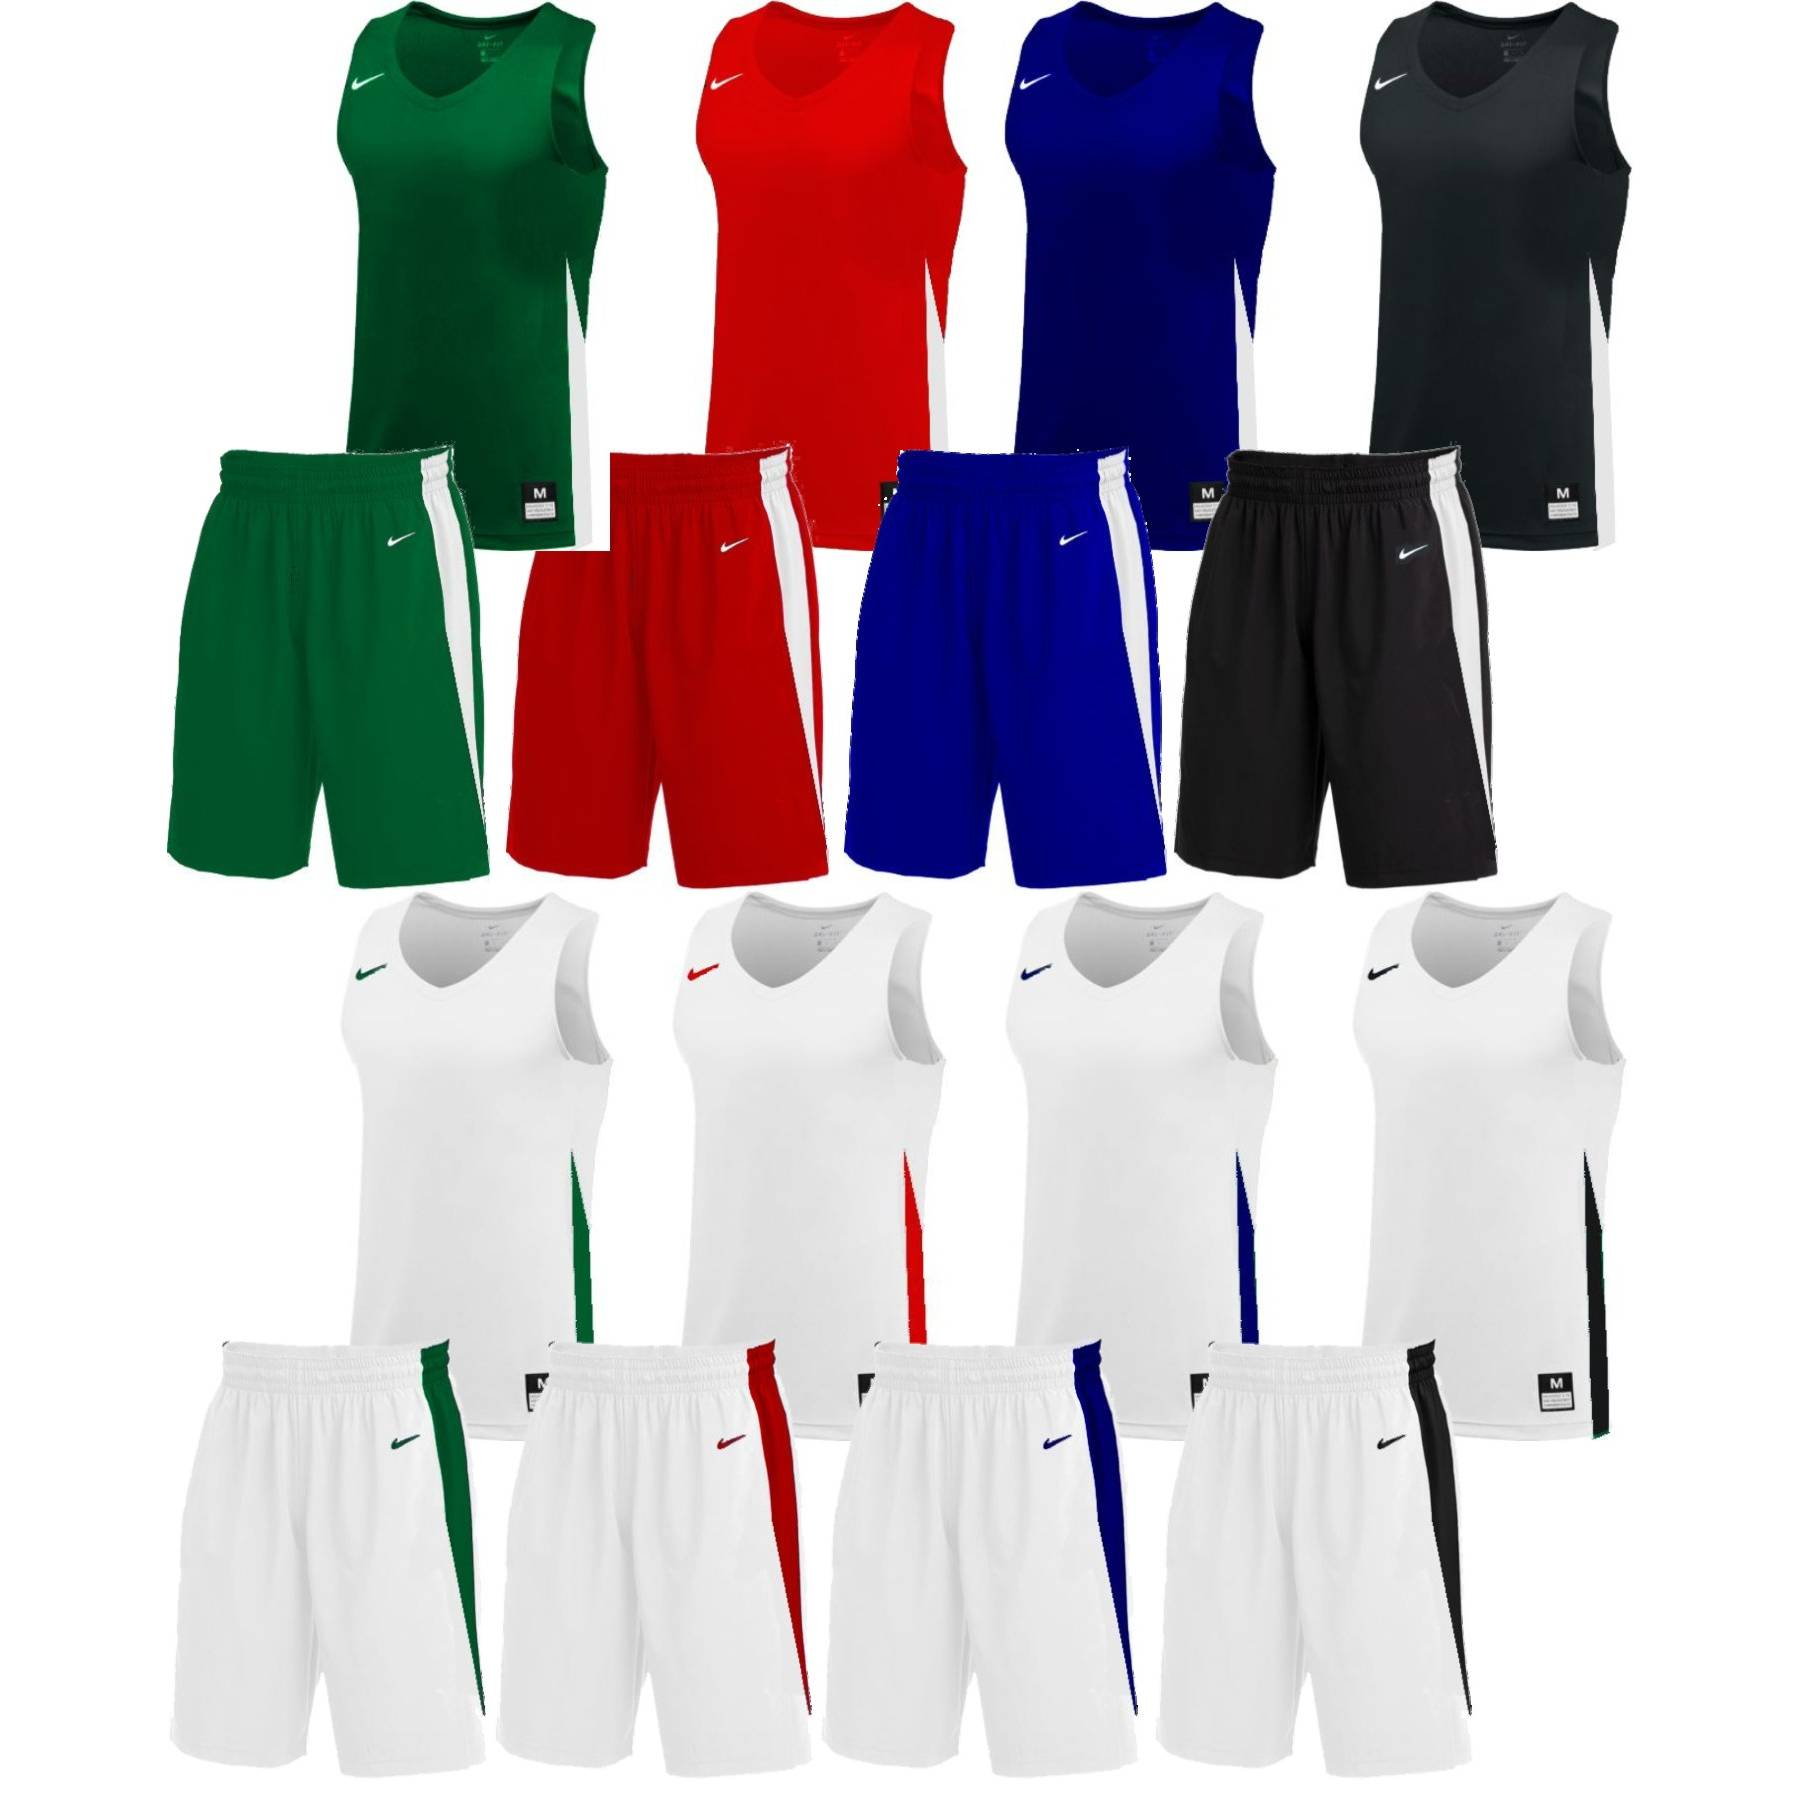 Teamwear - Nike Women's Team Basketball Stock Kit